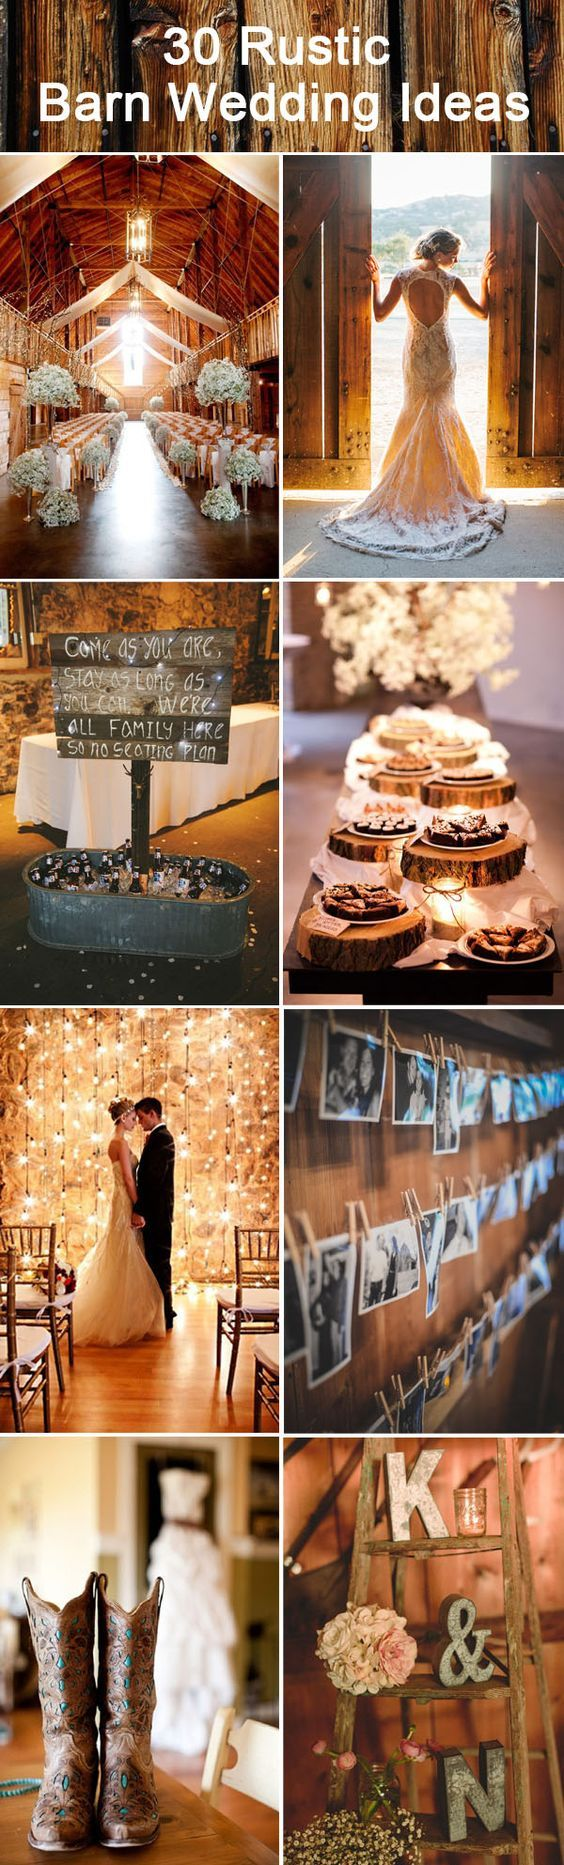 30 inspirational rustic barn wedding ideas: